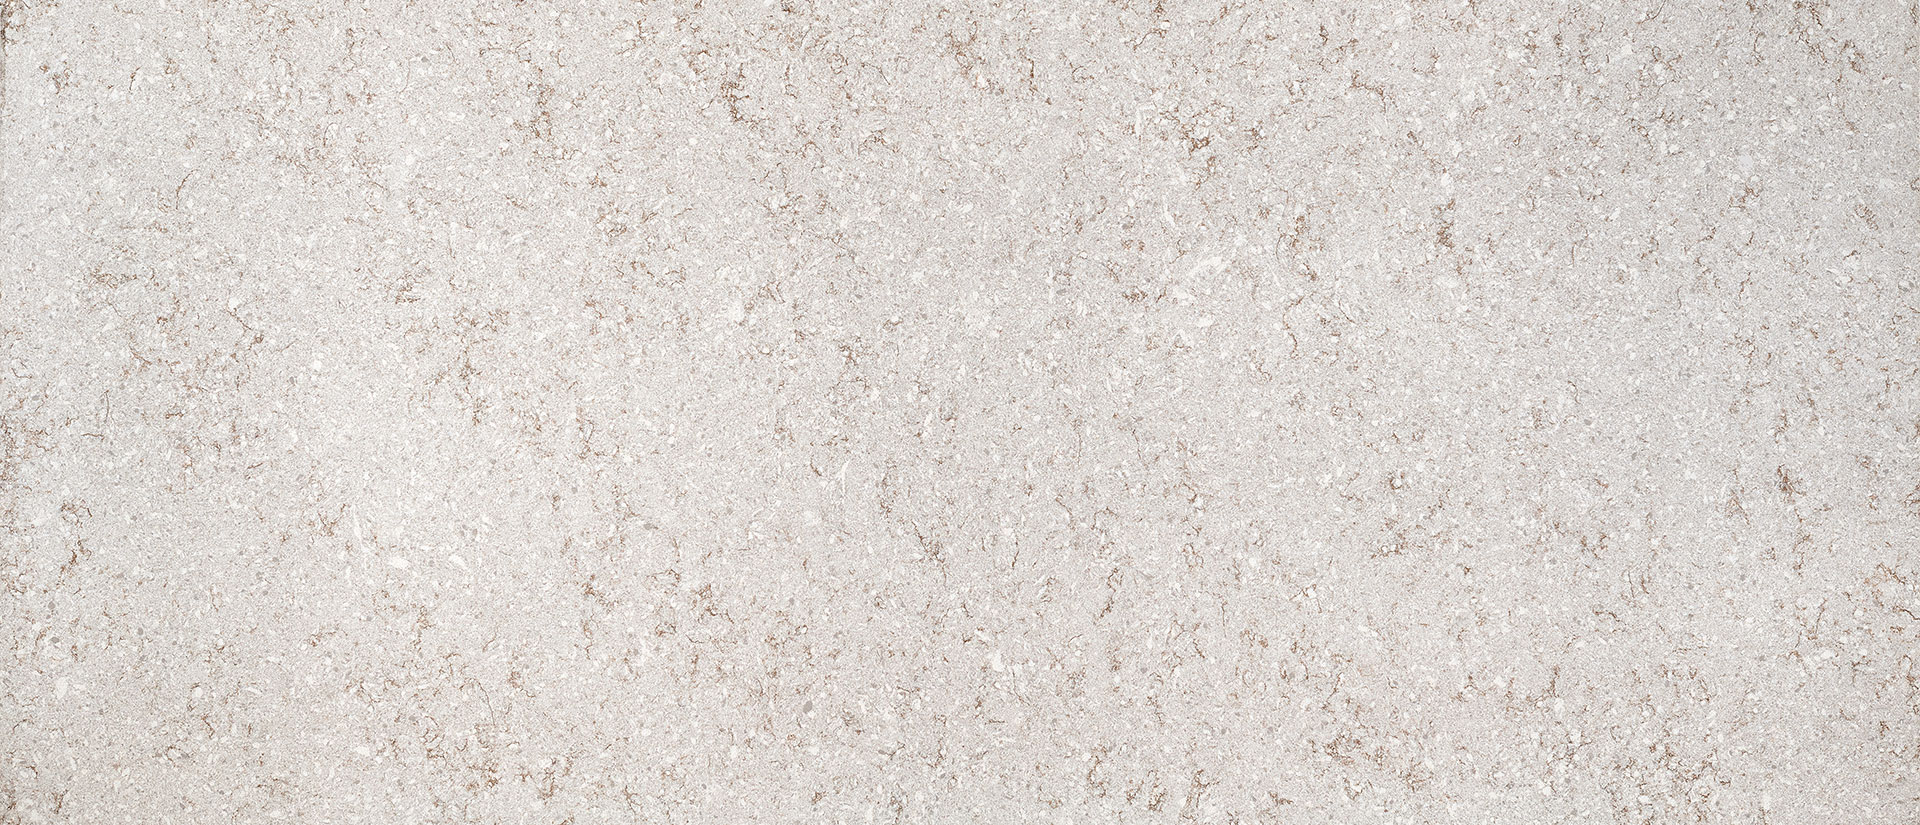 Cesar Countertop Gray Lagoon Quartz Countertops Q Premium Natural Quartz Msi